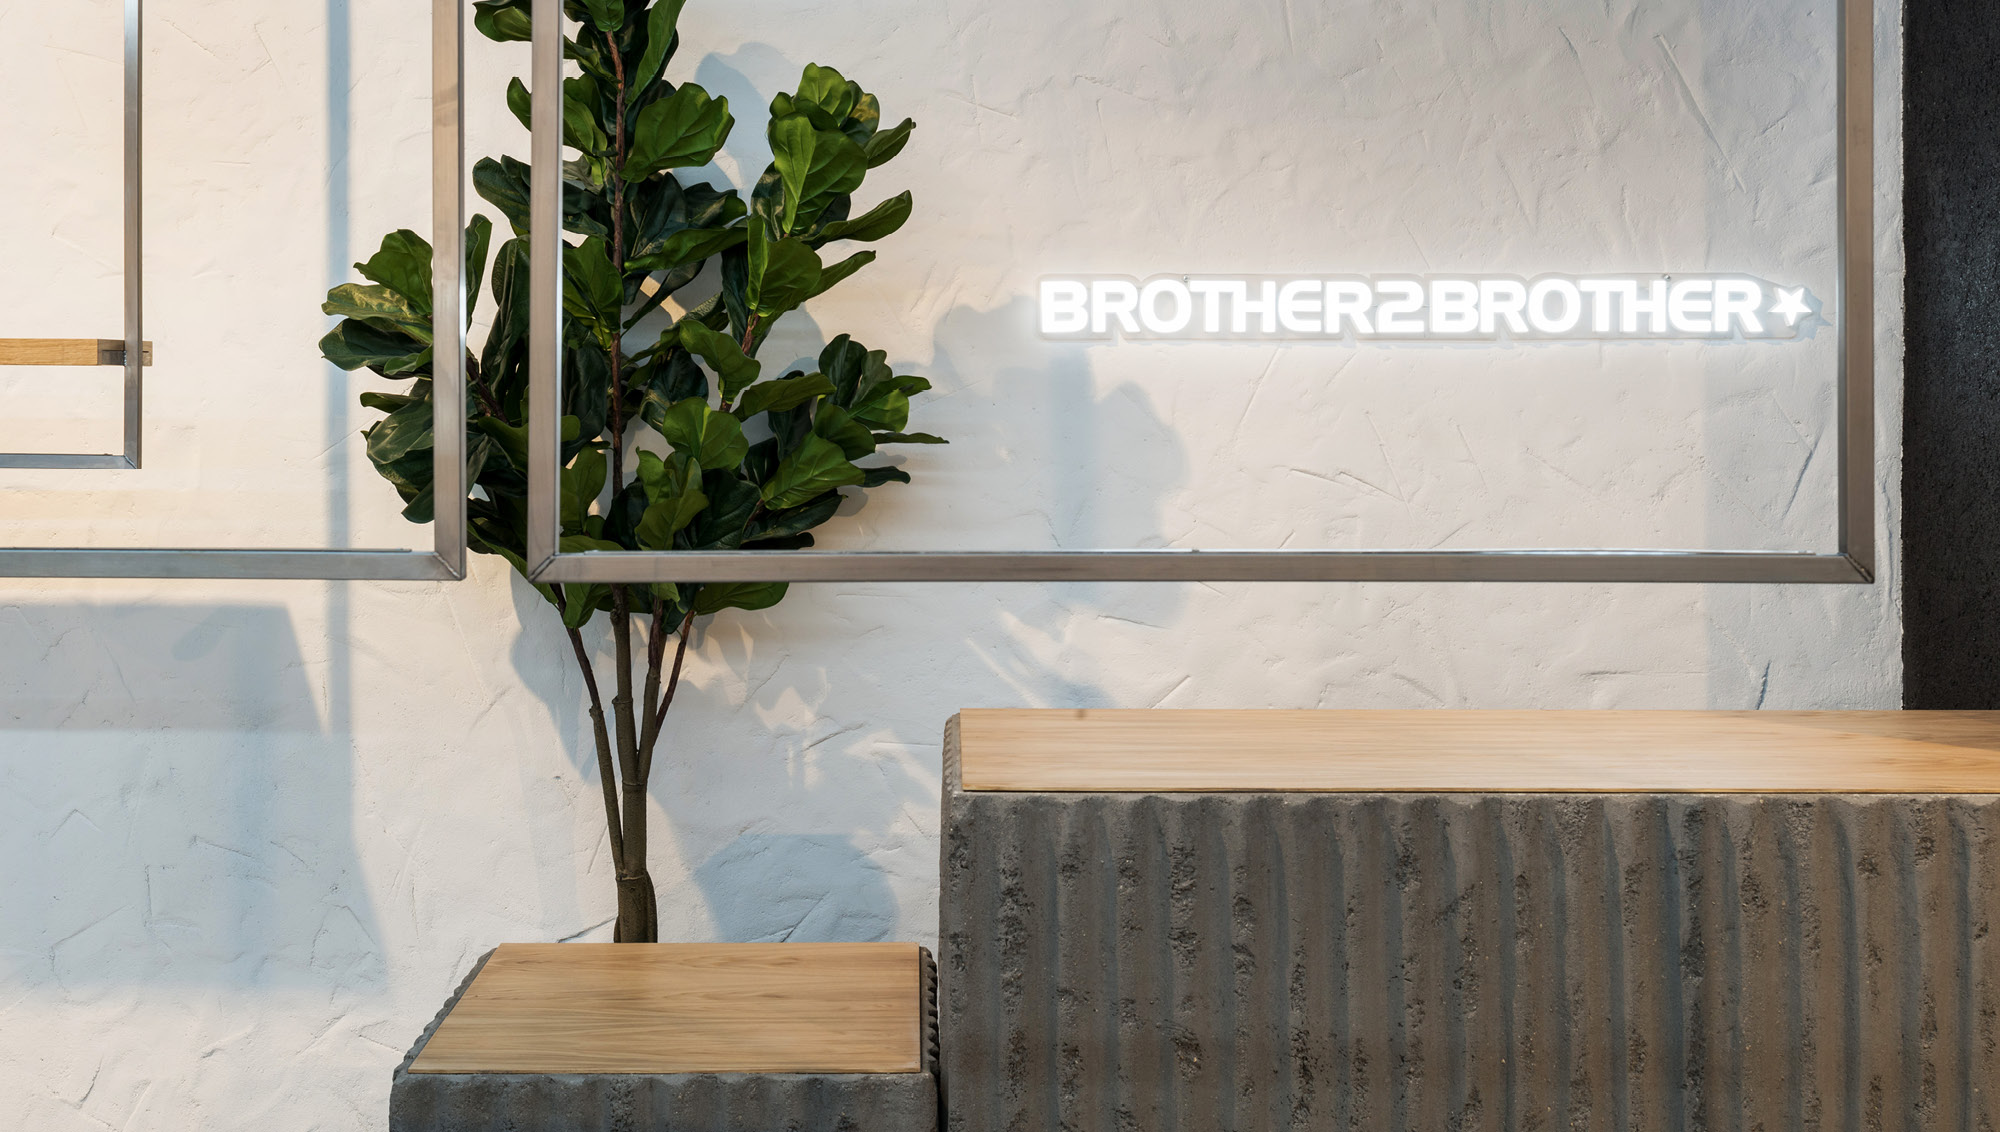 Brother2brother_Sheffield6.jpg